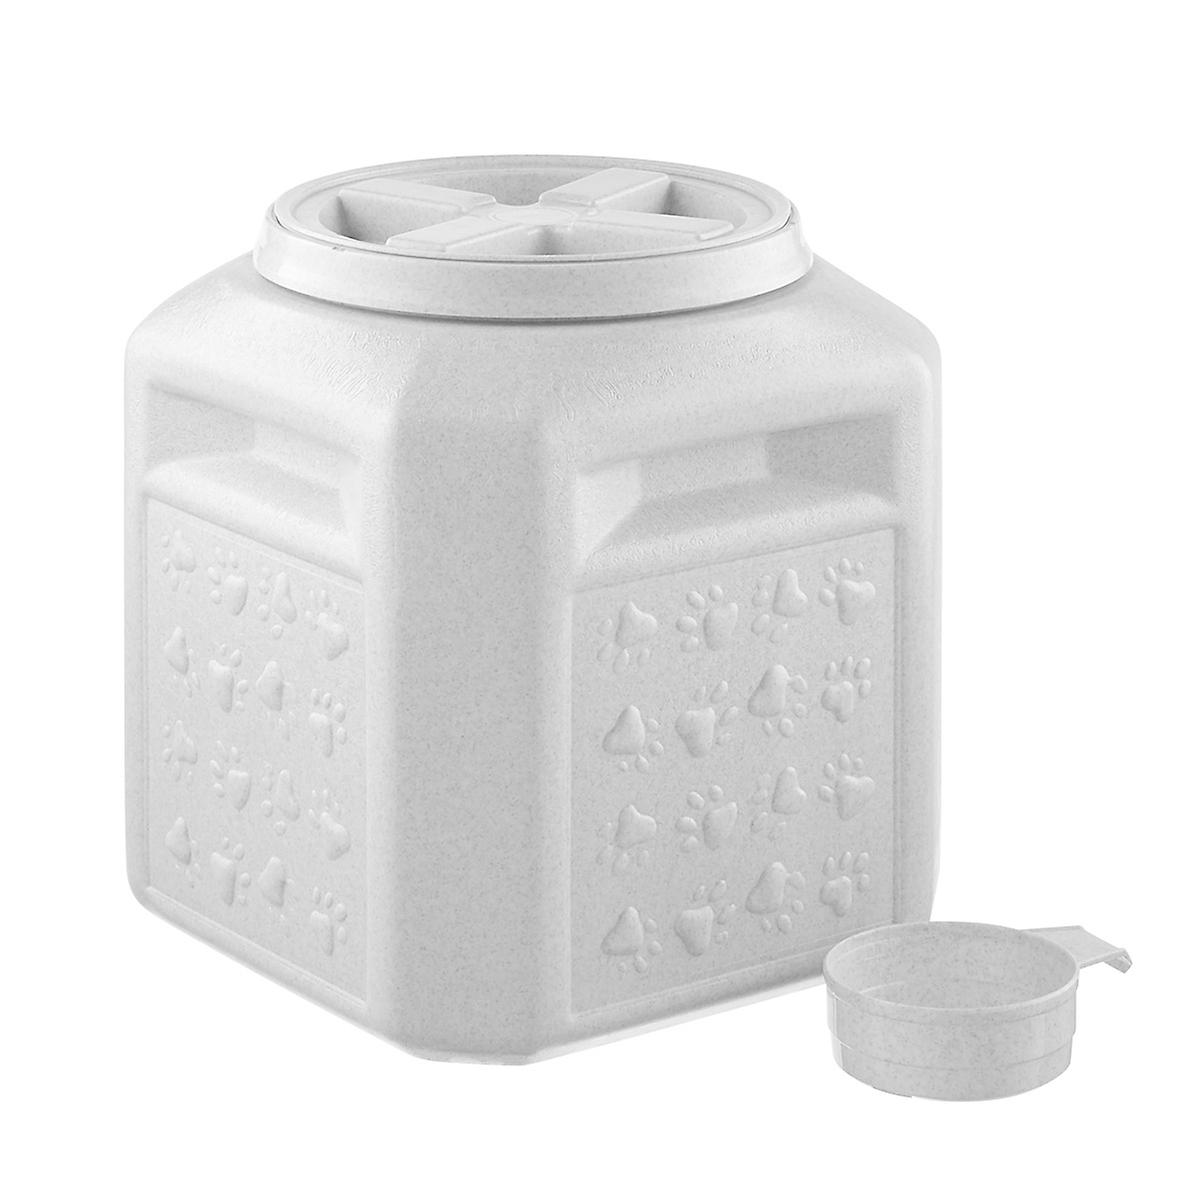 30 lb. Vittles Vault Pet Food Container